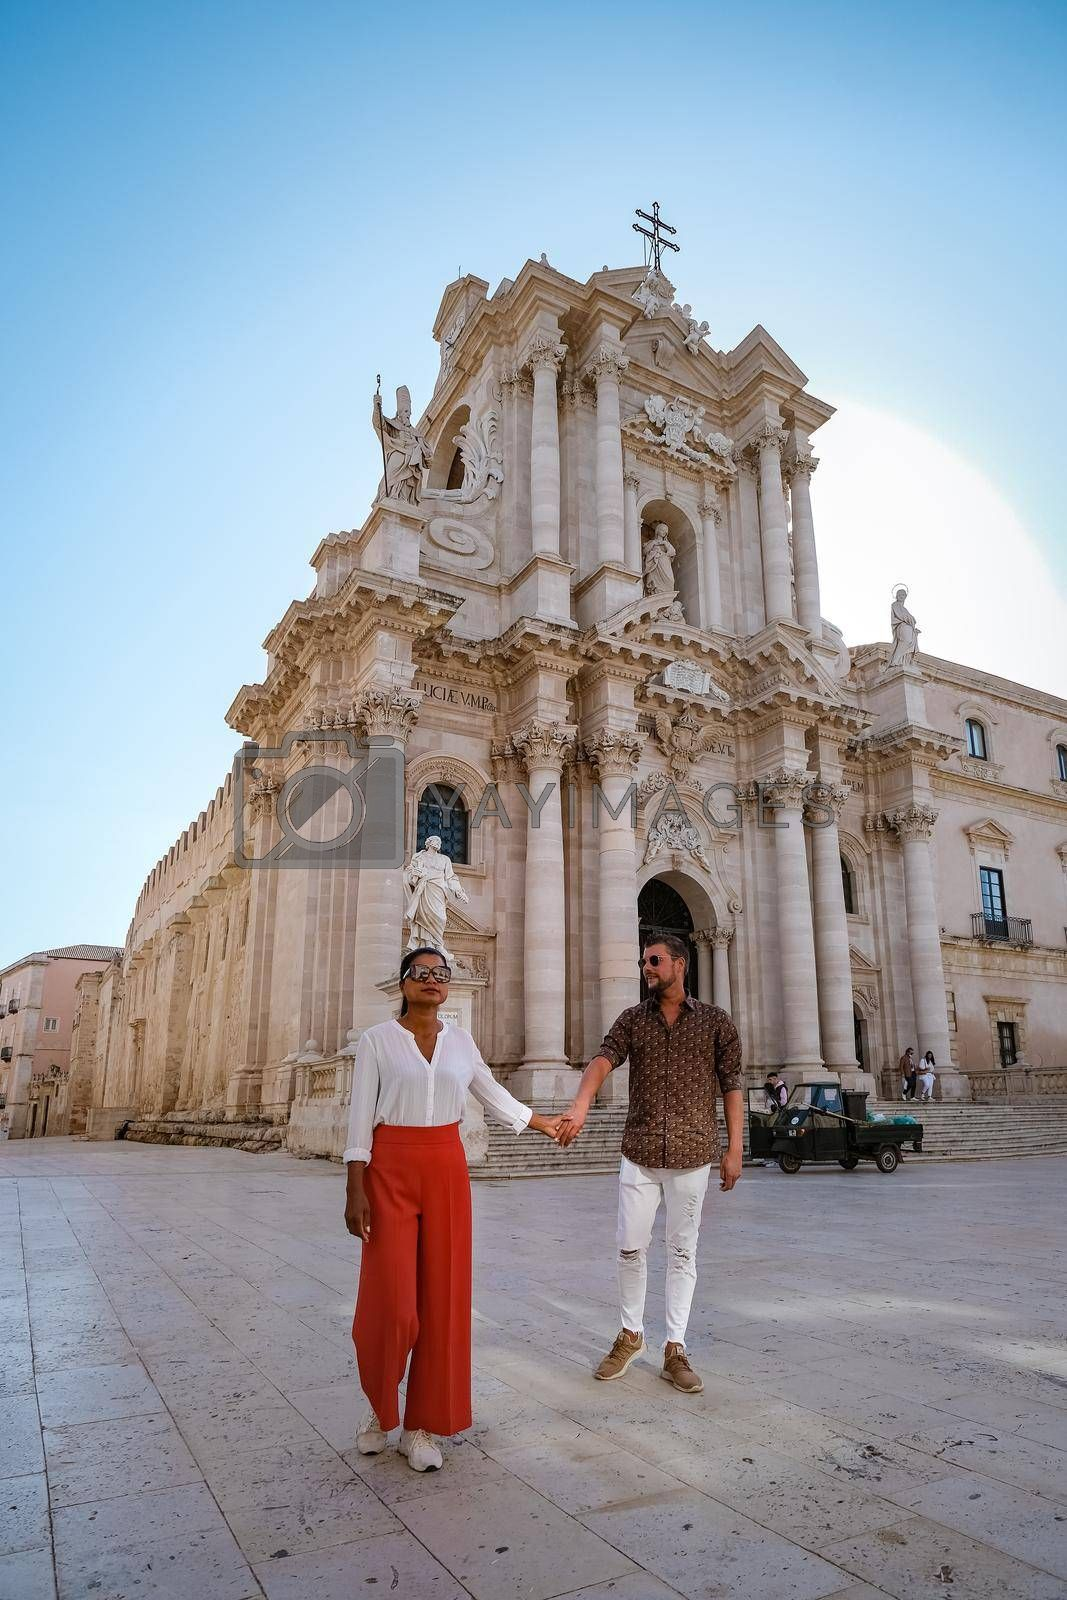 Royalty free image of couple men and woman on citytrip Ortigia in Syracuse in the Morning. Travel Photography from Syracuse, Italy on the island of Sicily. Cathedral Plaza and market with people whear face protection during the 2020 pandemic by fokkebok